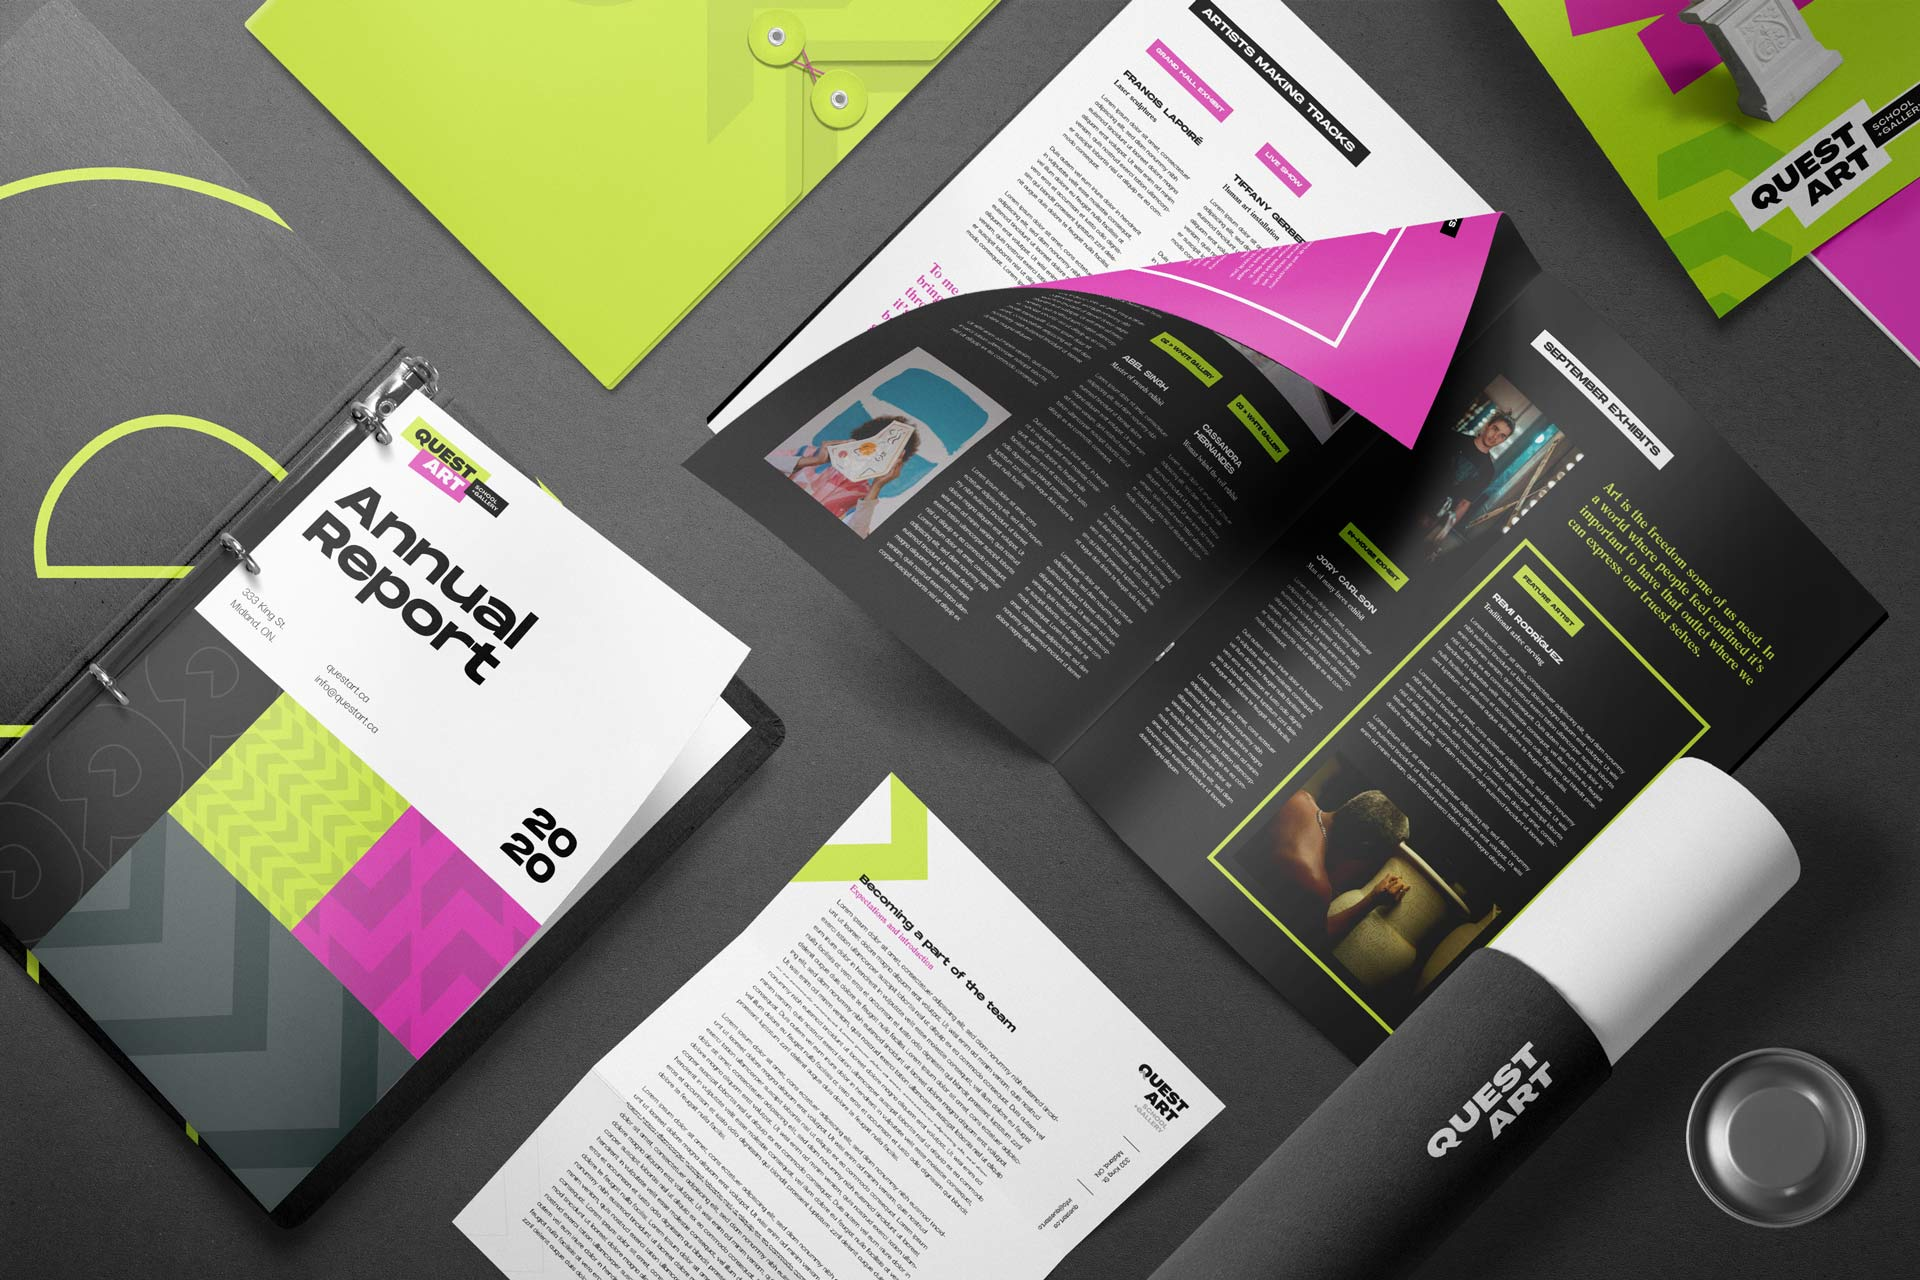 quest art school and gallery magazine letterhead and annual report branding design